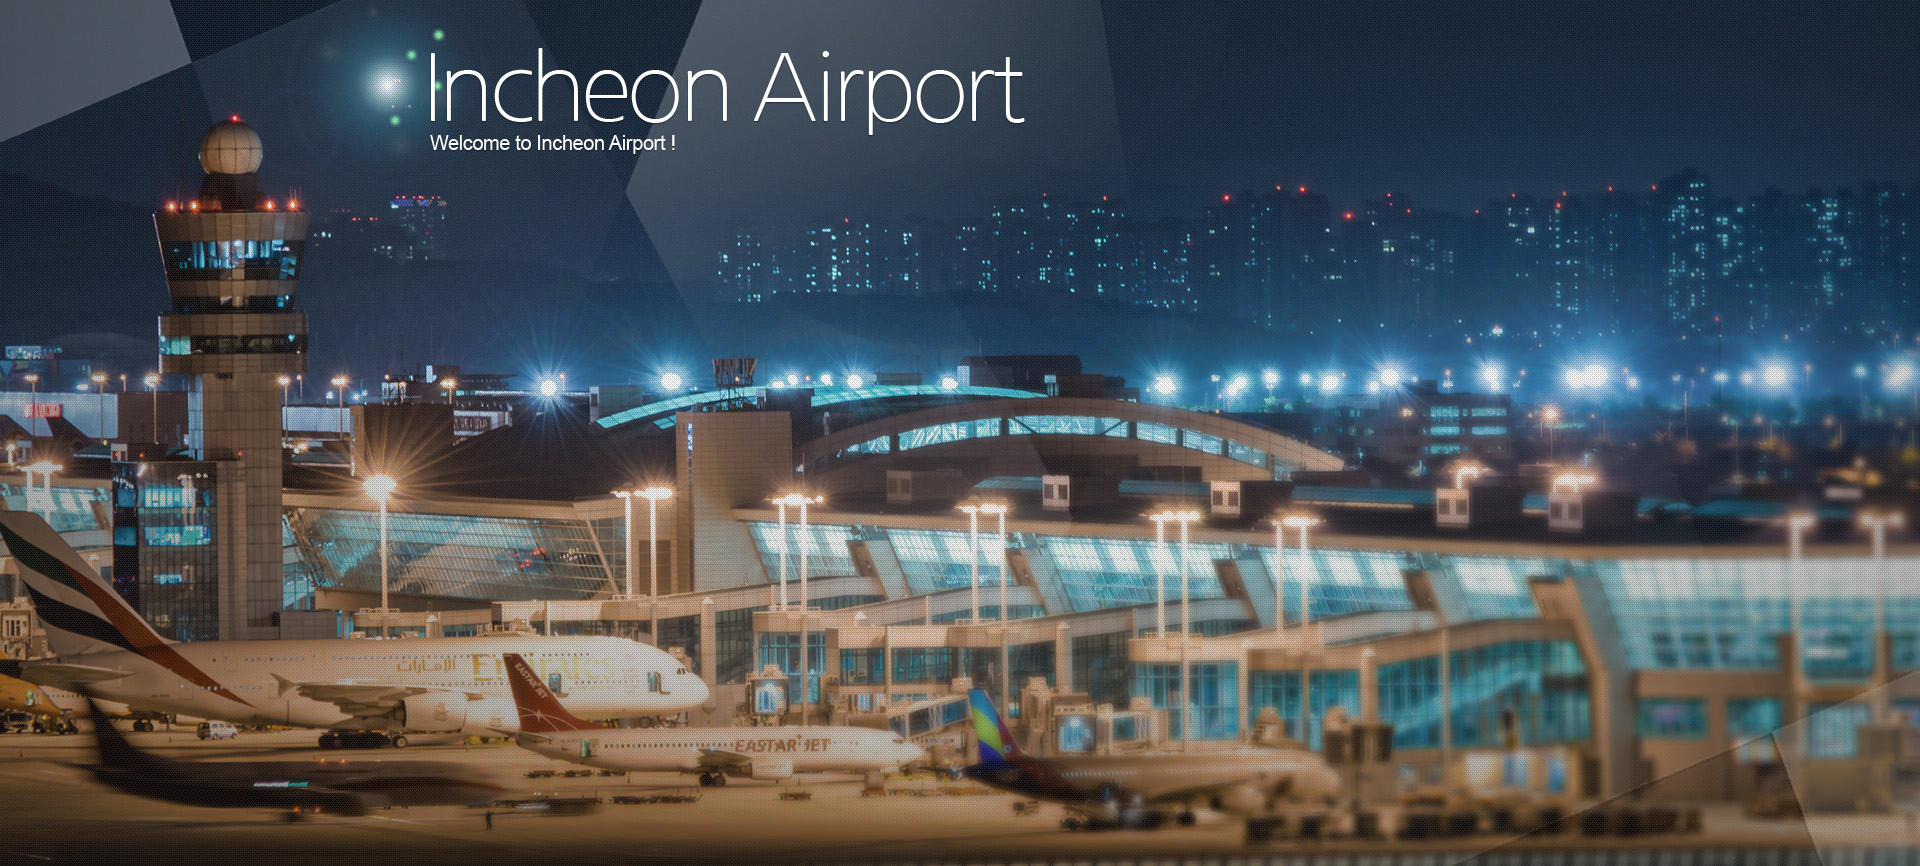 "Direction From Incheon Airport (인천공항) - 1.  Hop on Airport Bus 6020 at Gate number 5a and 11b.     (*If you have any question about direction or transportation, go to Information Desk in Incheon airport – staff there provides the best service in the world!)2. Take off the airport bus at ""Gangnam Station Exit 1"" (강남역 1번 출구) bus stop (9th bus stop from the airport).  * Bus information: One way costs 15,000 Won ($13), and the bus runs from 4:05AM to 11:00PM in 25 minute intervals.  Depending on traffic, it takes about 60-90 minutes from the airport to my place.  Among many transportation options, bus is probably the easiest way to get to my place if this is your first time to visit Seoul.GOOGLE MAP FOR MIKE HOMES"